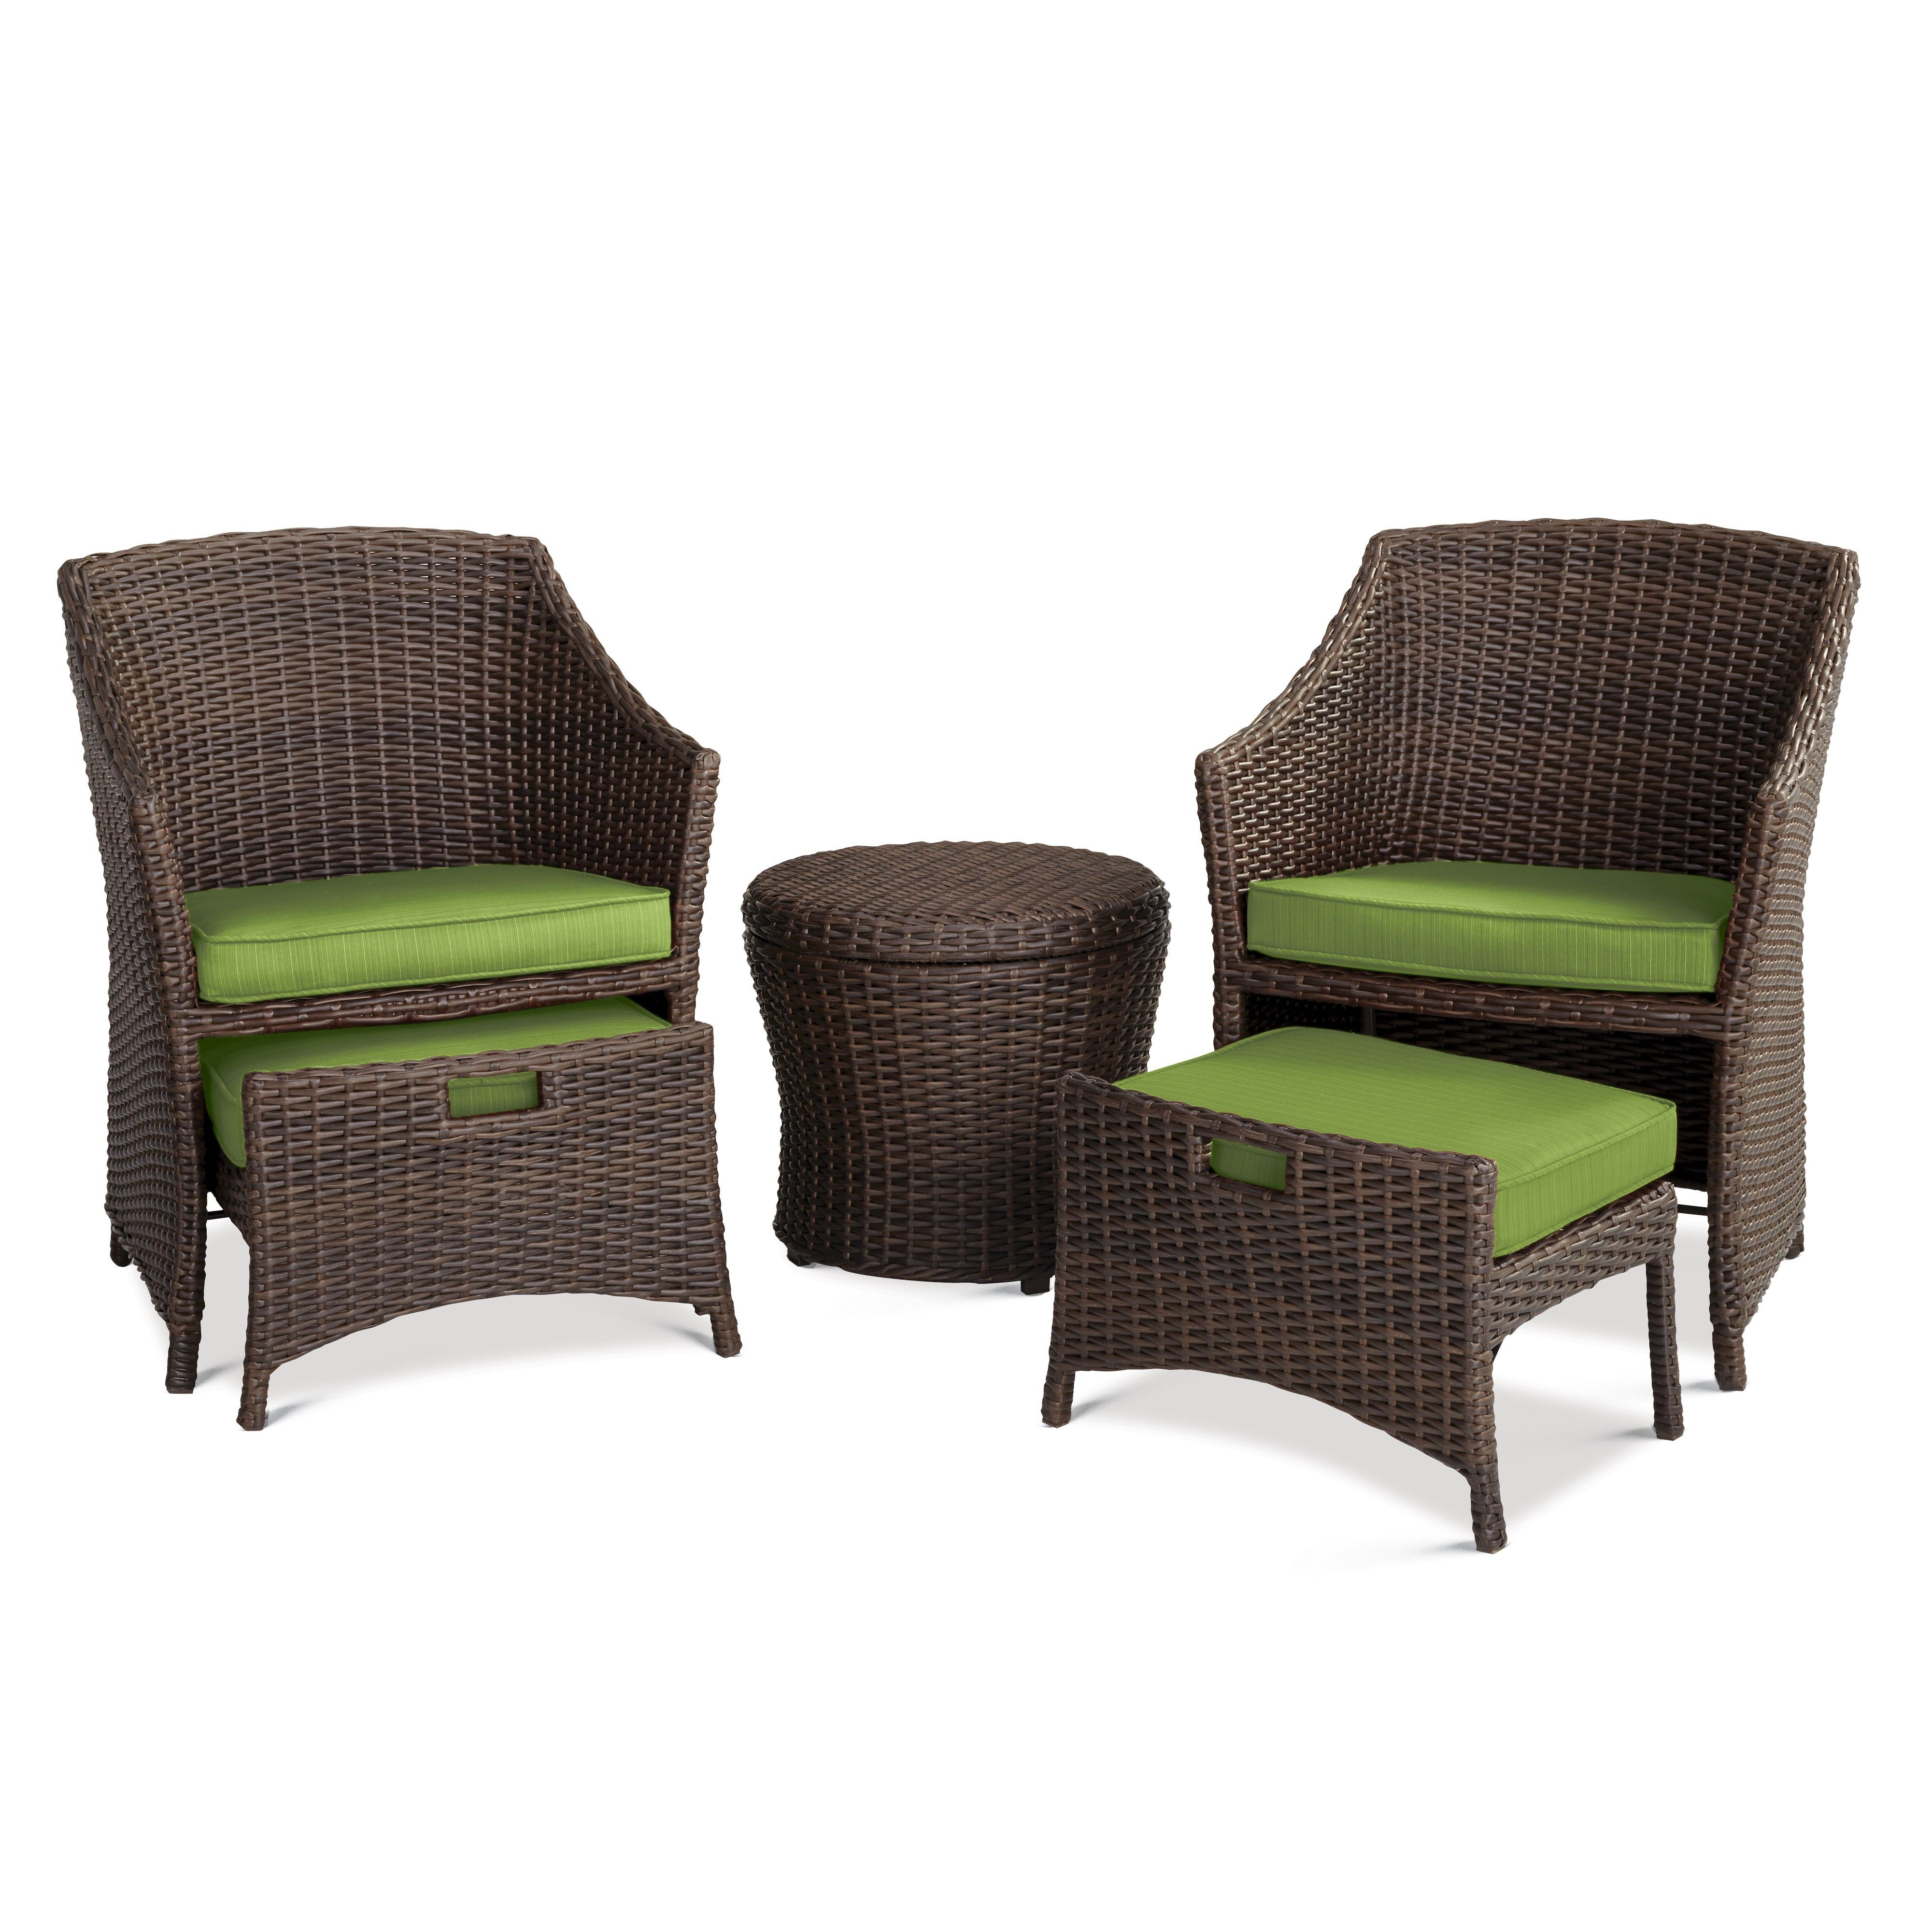 Relax with the Belvedere 5Piece Chat Set from Threshold